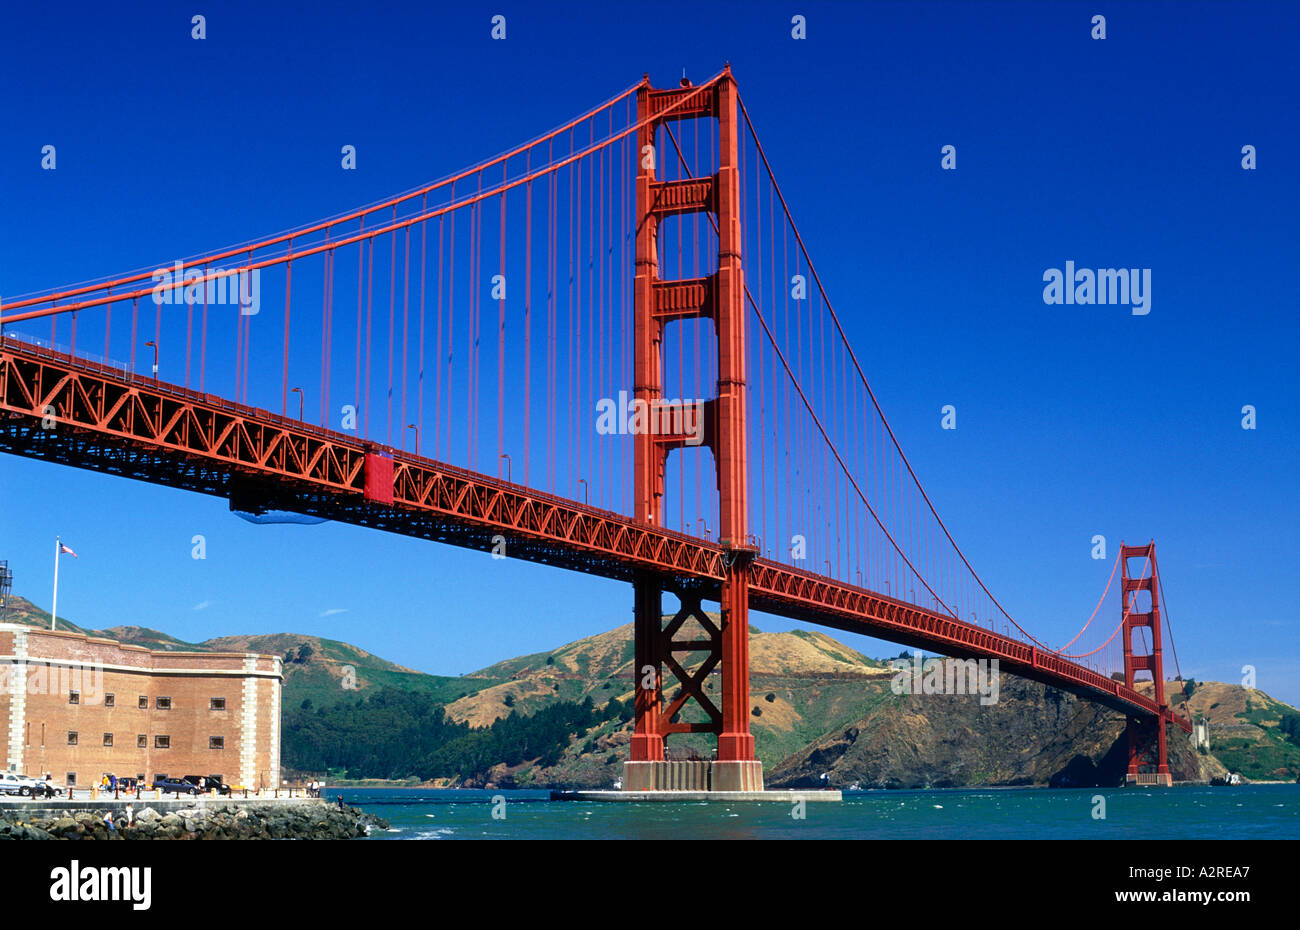 USA California San Francisco Golden Gate Bridge - Stock Image